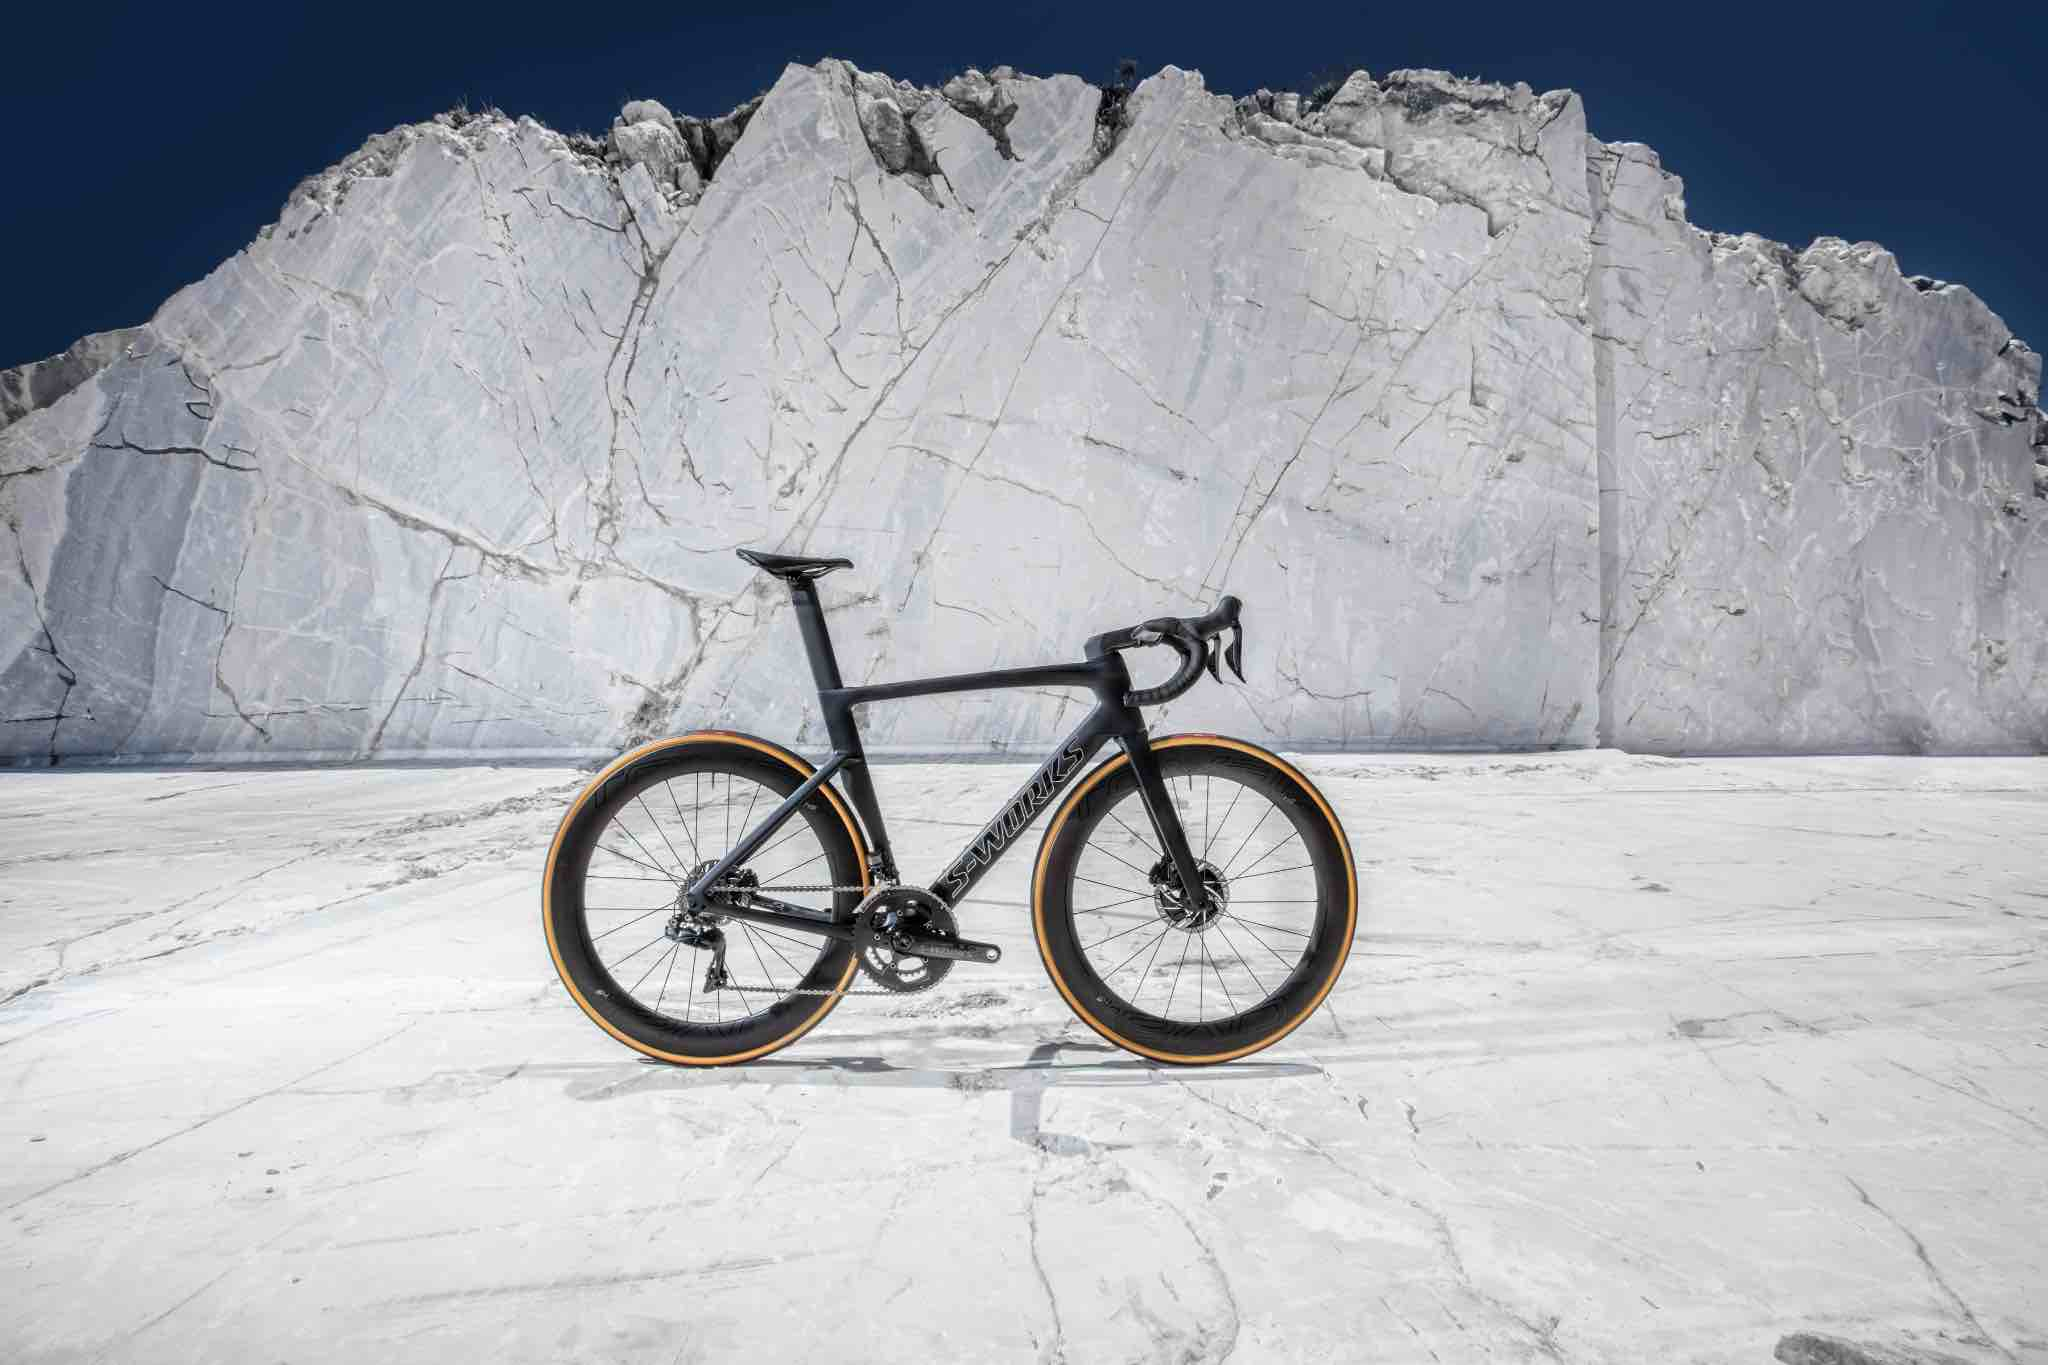 The all-new S-works Venge is faster and lighter than ever before